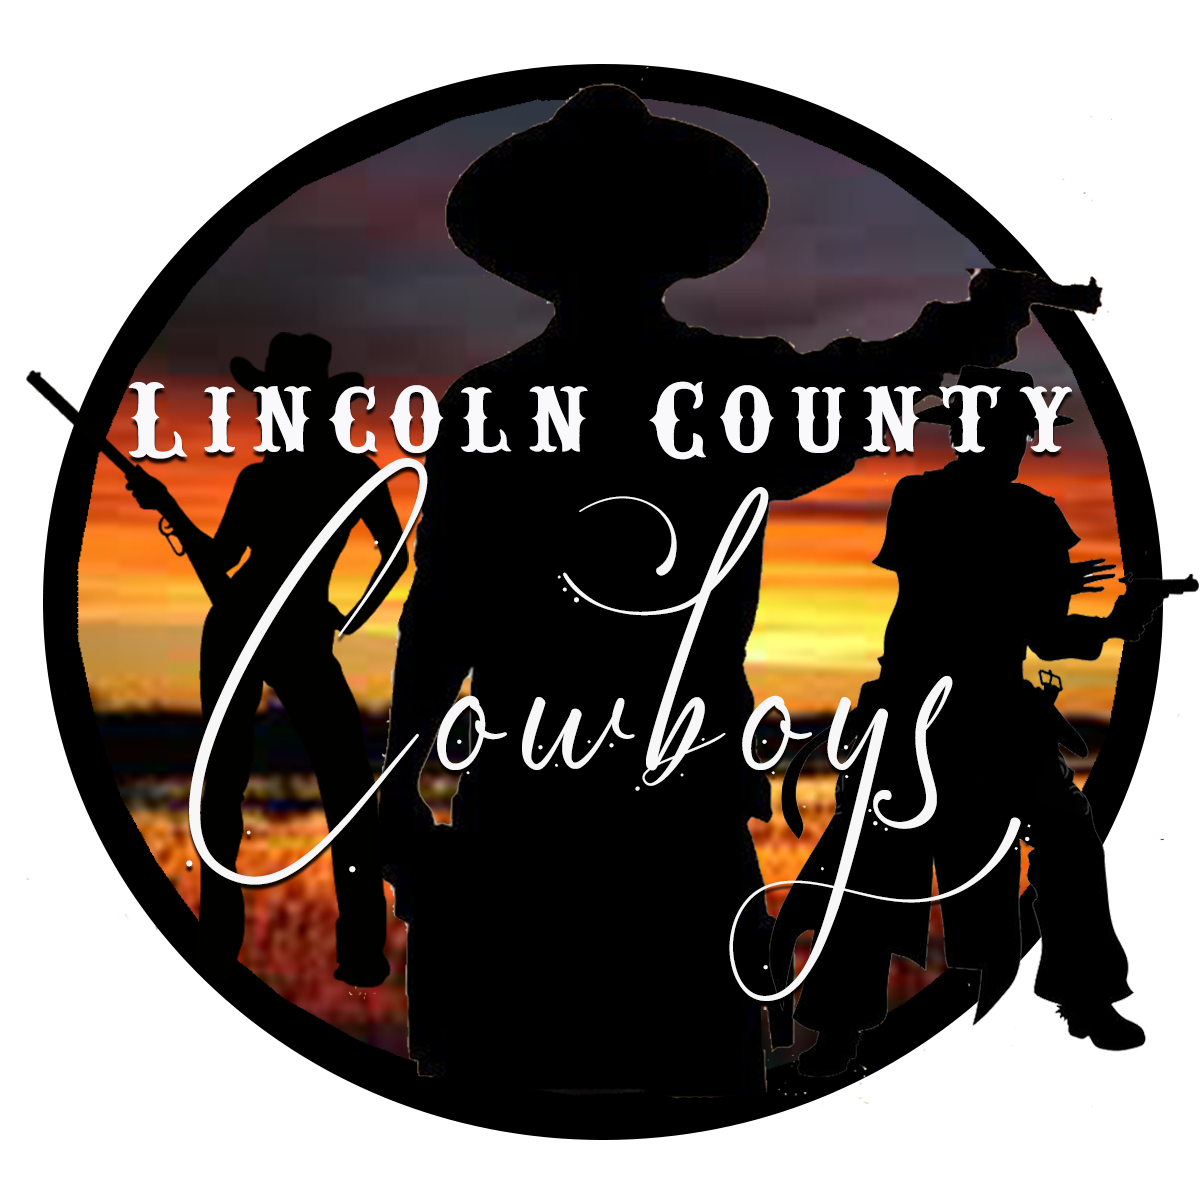 Lincoln County Cowboys